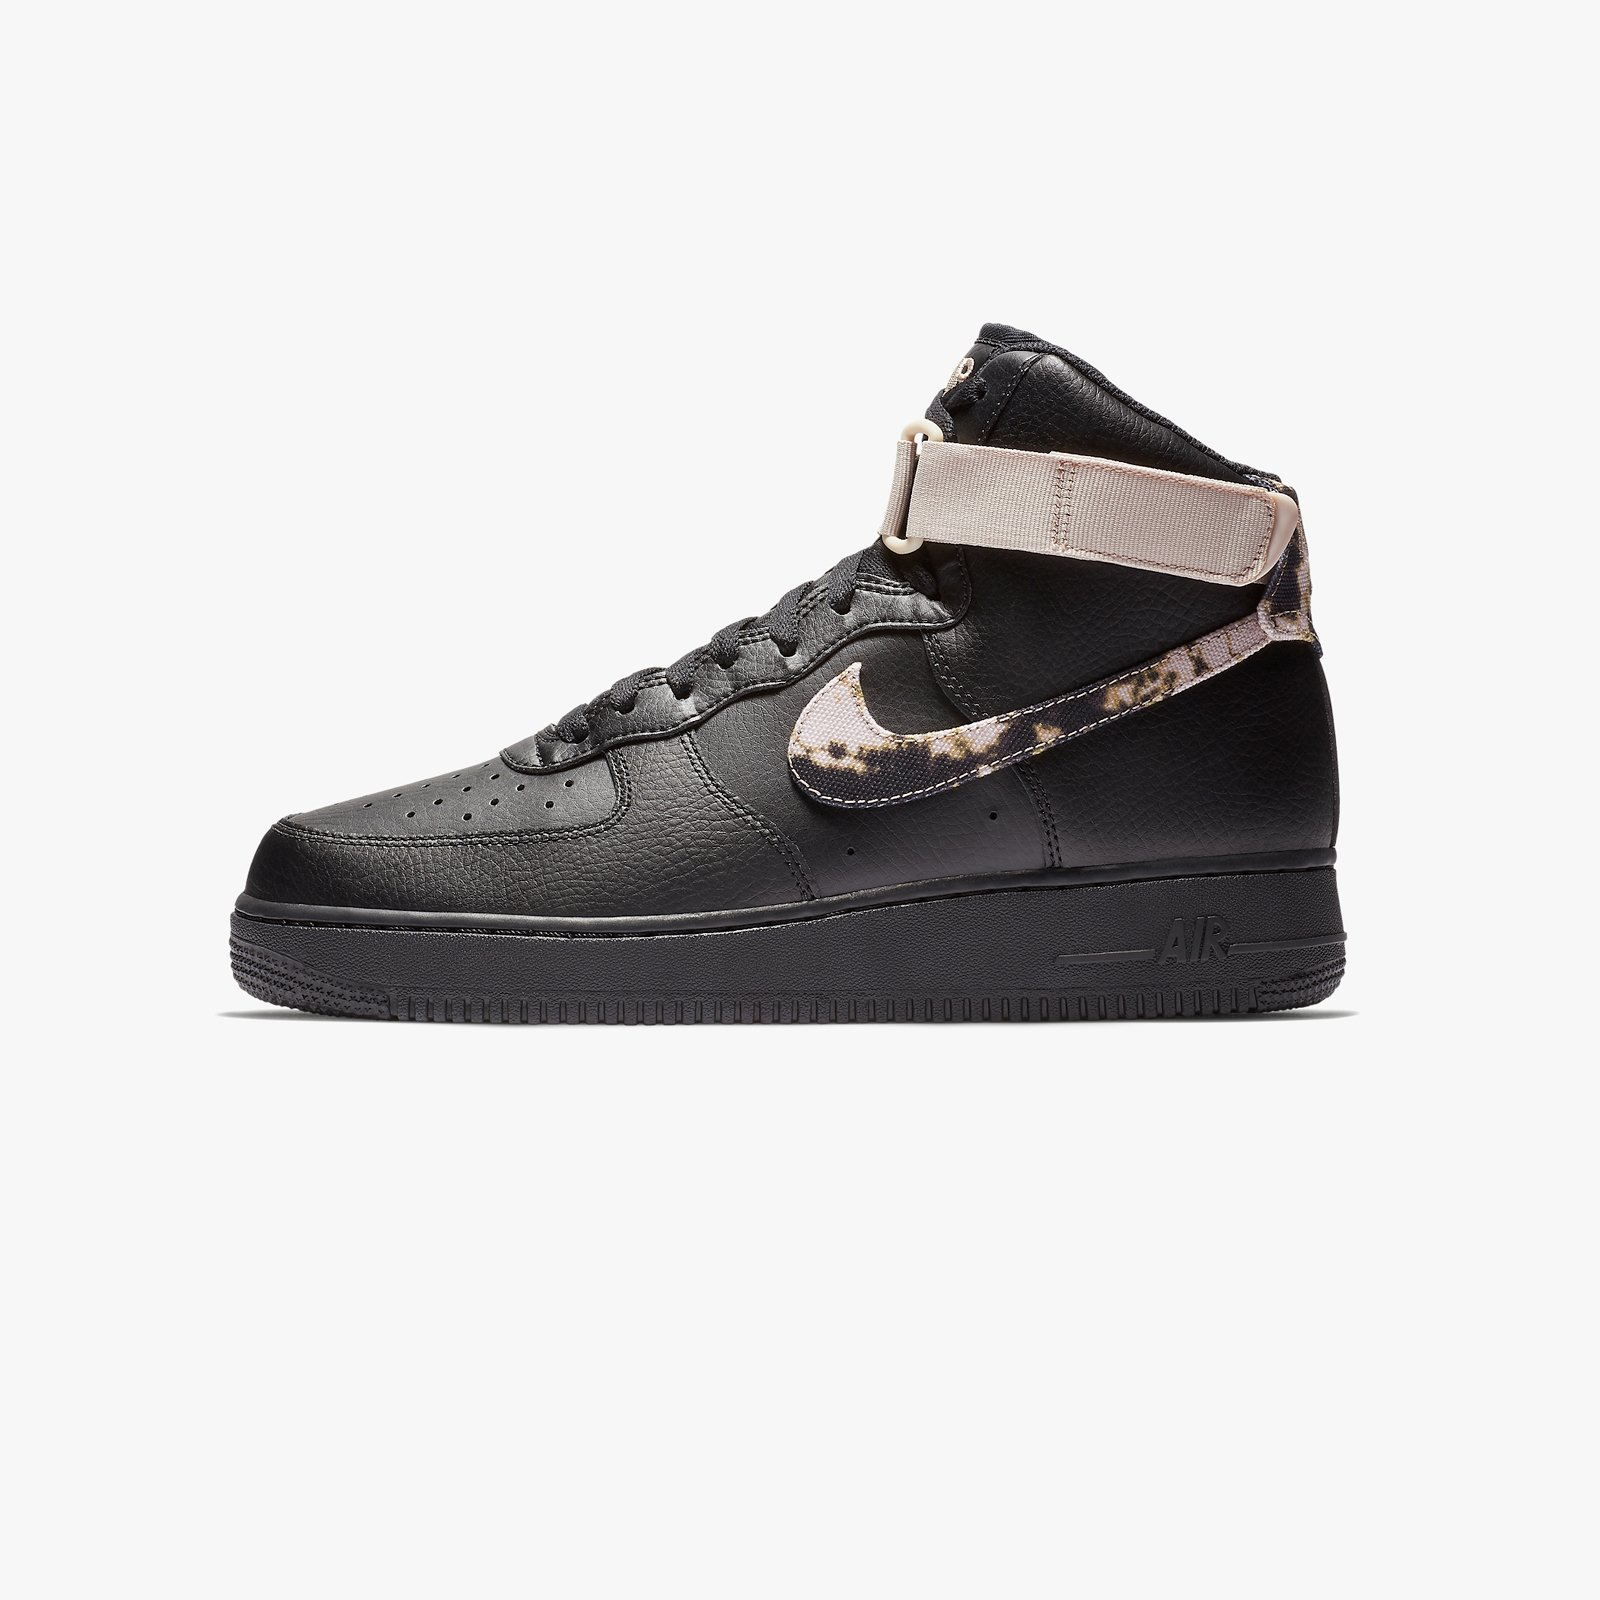 Nike Air Force 1 High Print Ar1954 002 Sneakersnstuff